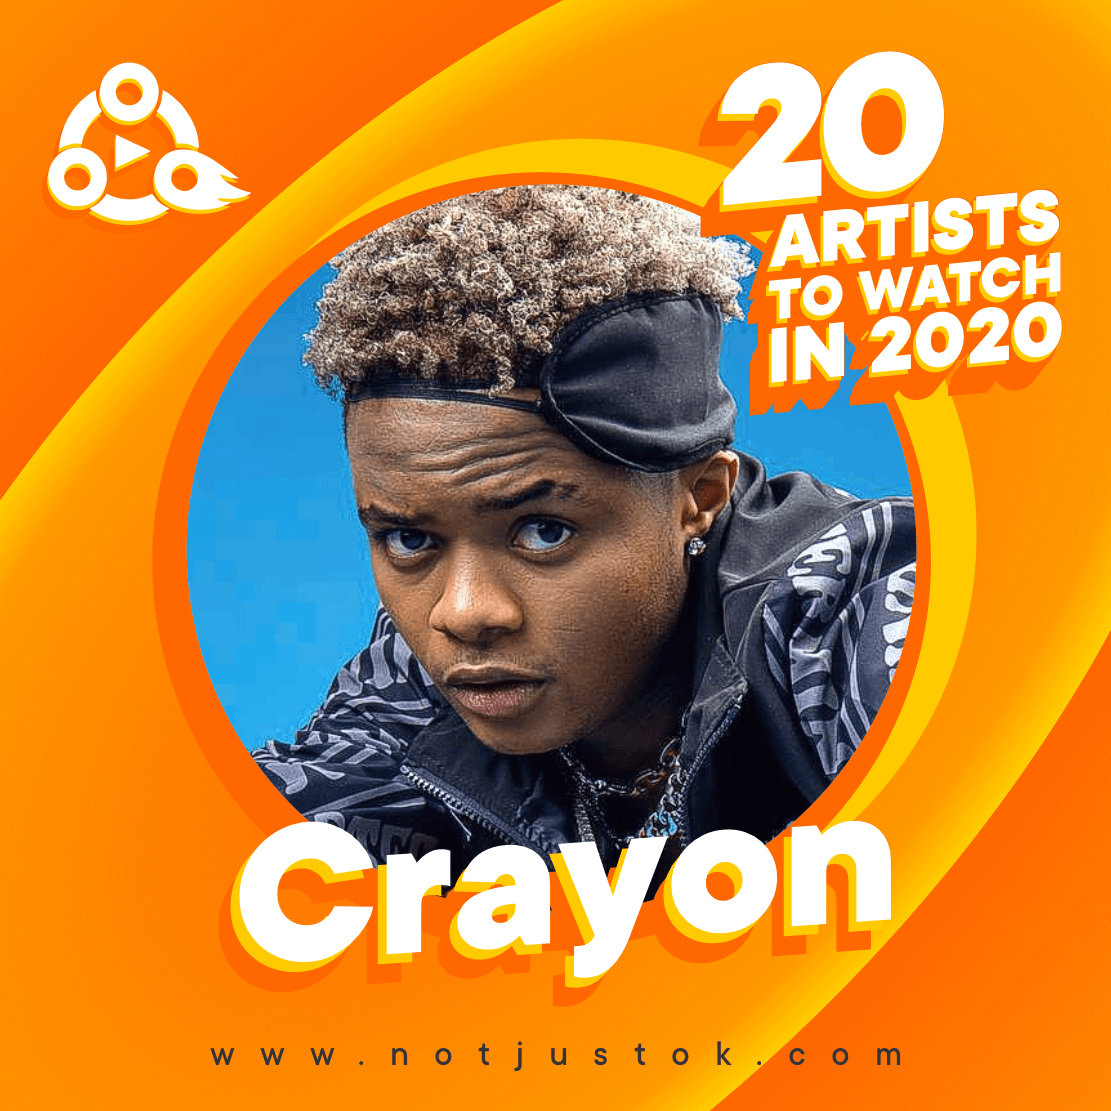 The 20 Artistes To Watch In 2020 - Crayon